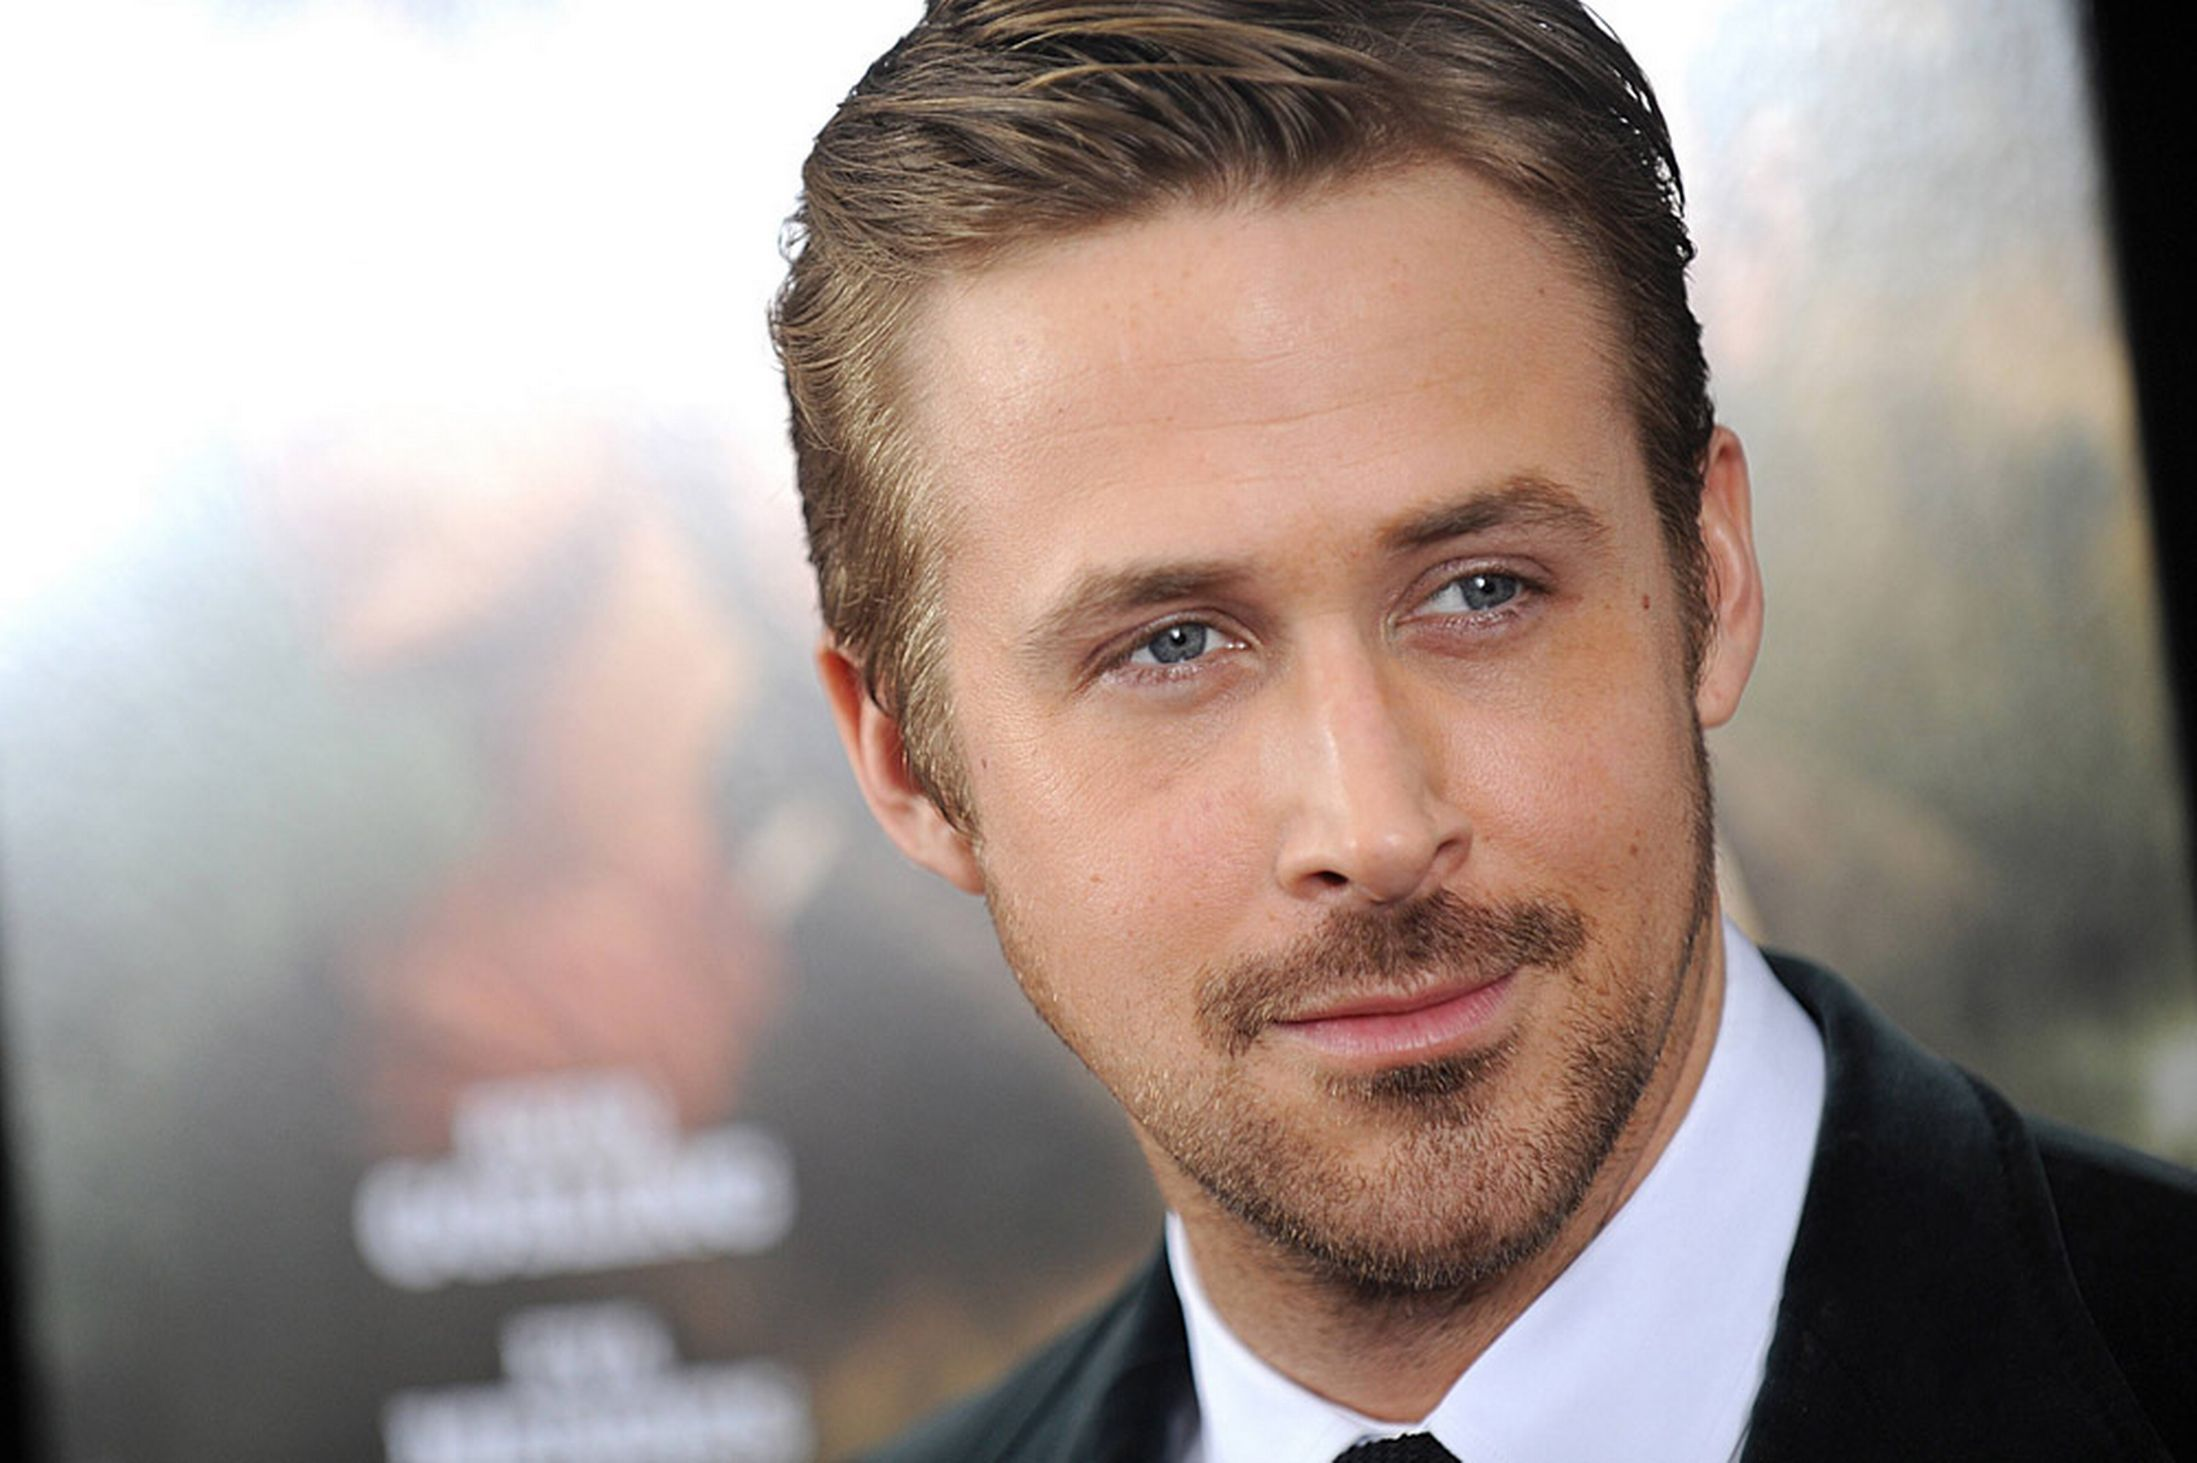 5 FACTS YOU NEVER KNEW ABOUT RYAN GOSLING